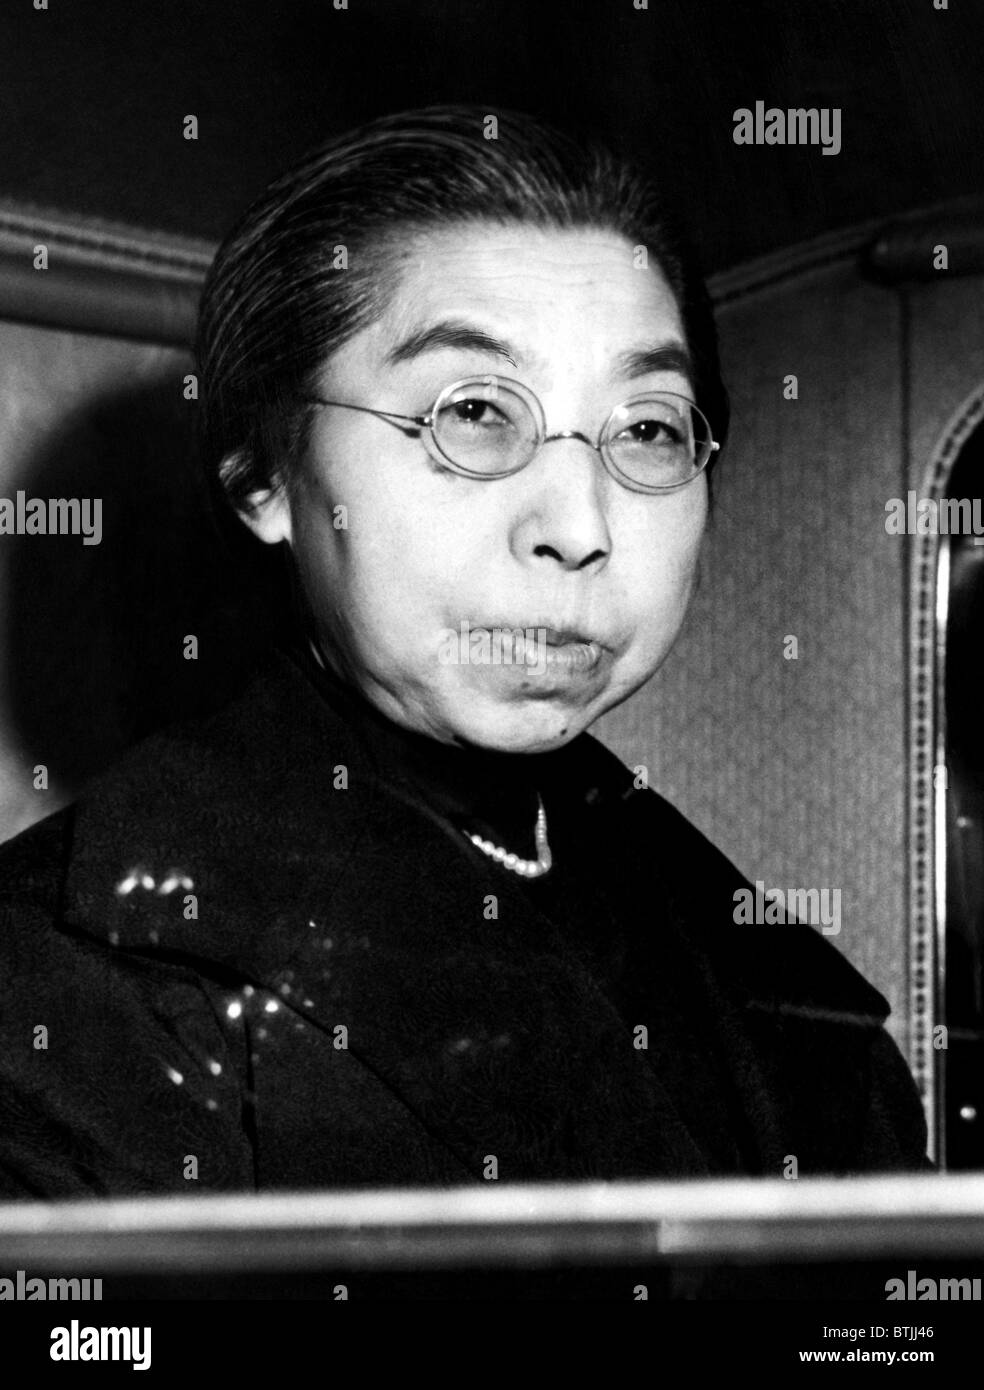 Empress Dowager of Japan as she arrives at the Palace in Tokyo to visit her son, Emperor Hirohito. December 1945. - Stock Image